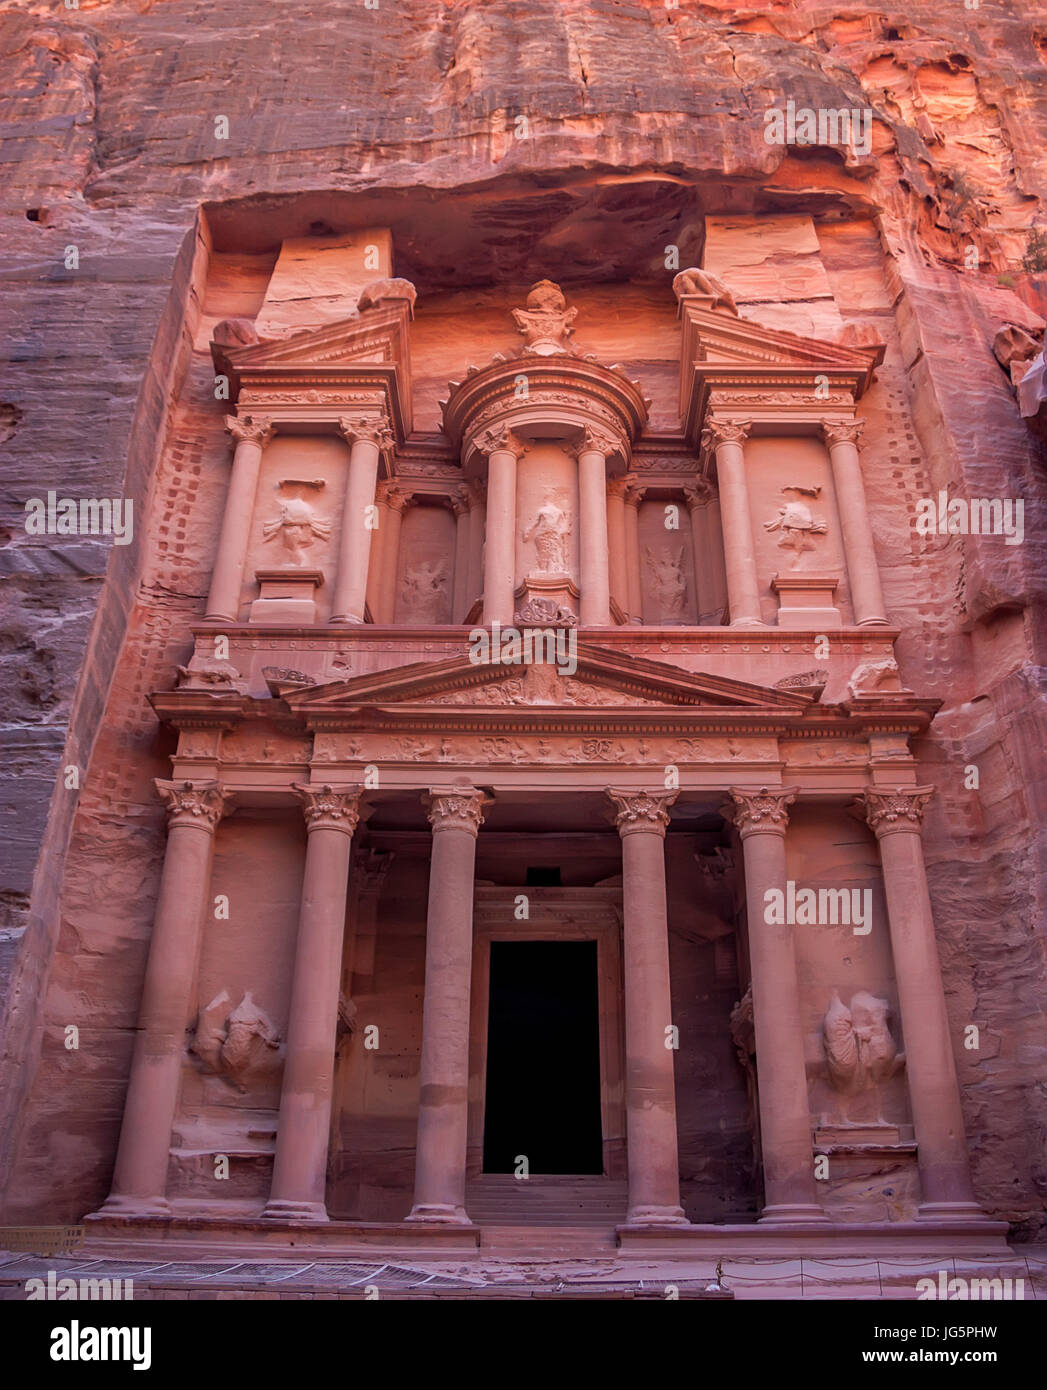 Famous tomb Al-Khazneh or Treasury in Petra - Stock Image